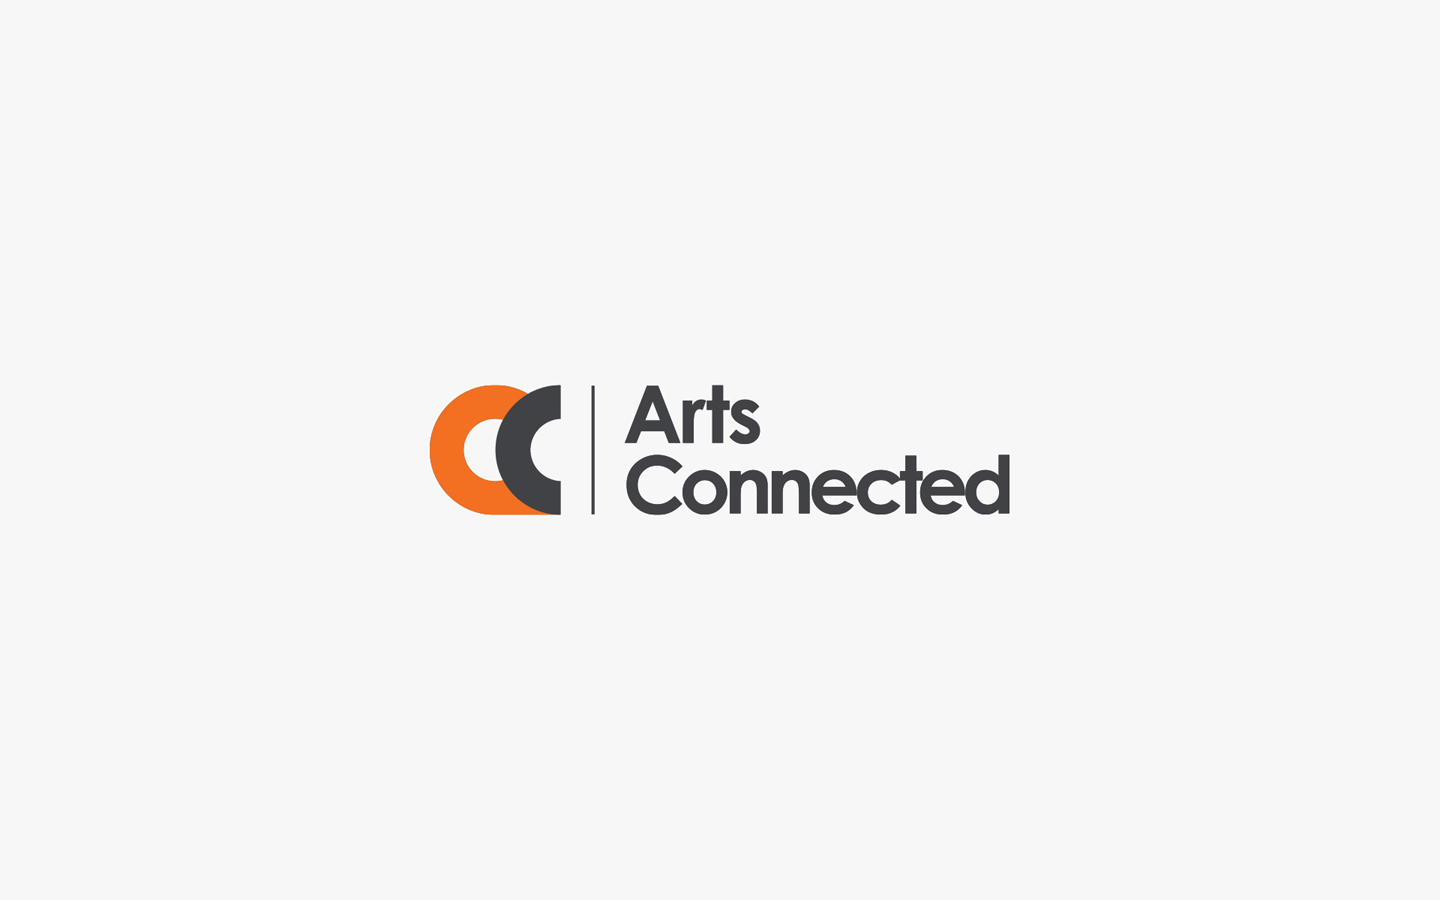 Arts Connected Logo Design in Colour